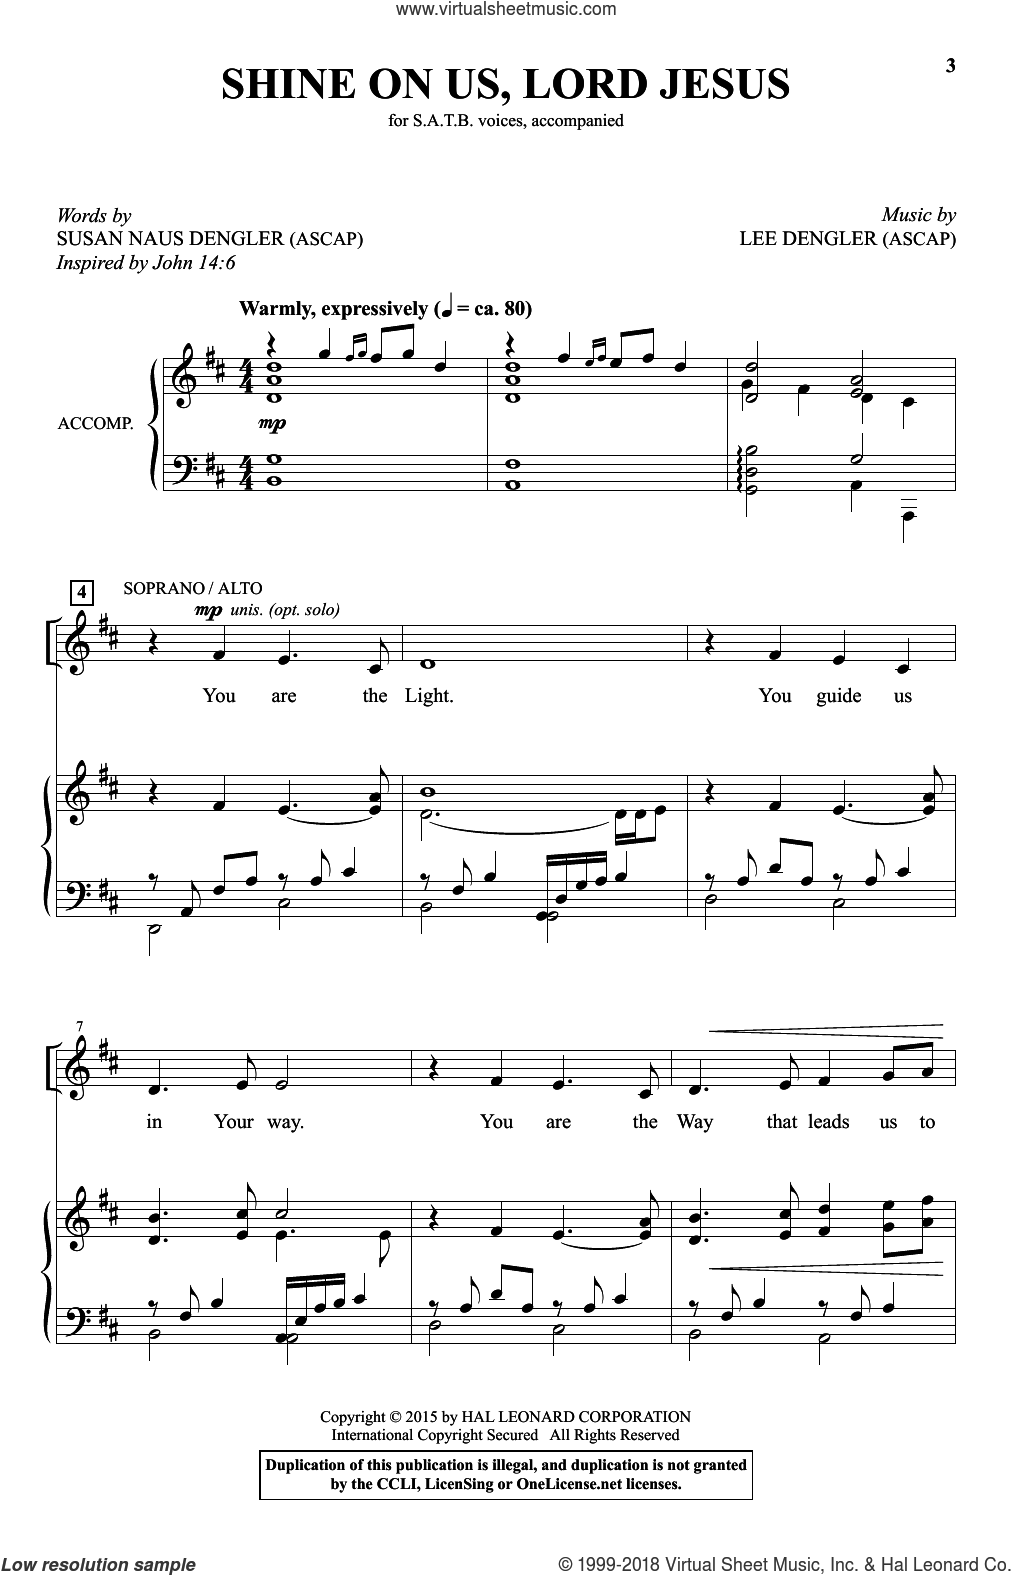 Shine On Us, Lord Jesus sheet music for choir and piano (SATB) by Susan Naus Dengler and Lee Dengler. Score Image Preview.